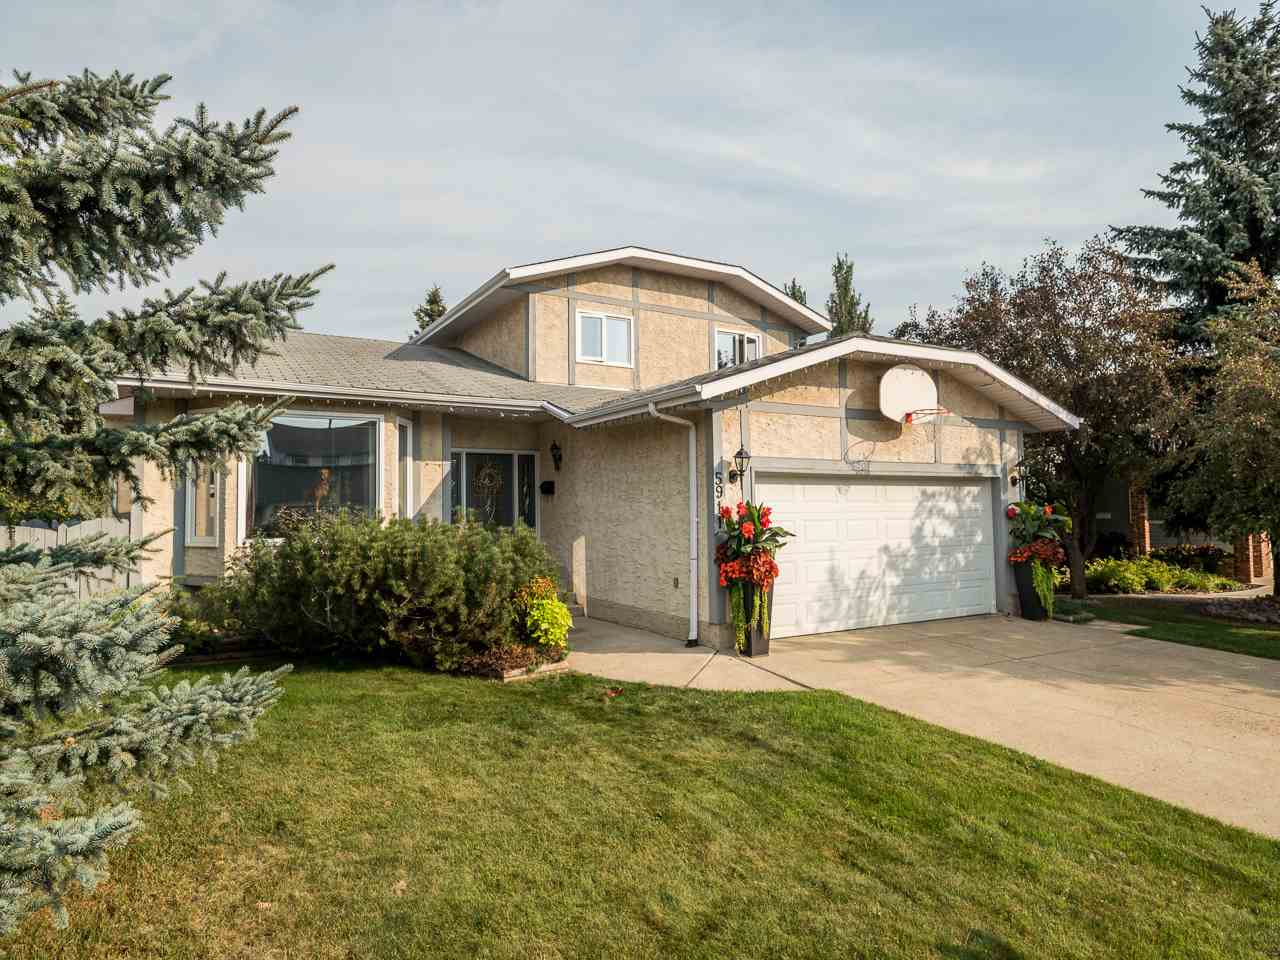 Main Photo: 5911 181 Street in Edmonton: Zone 20 House for sale : MLS®# E4098465